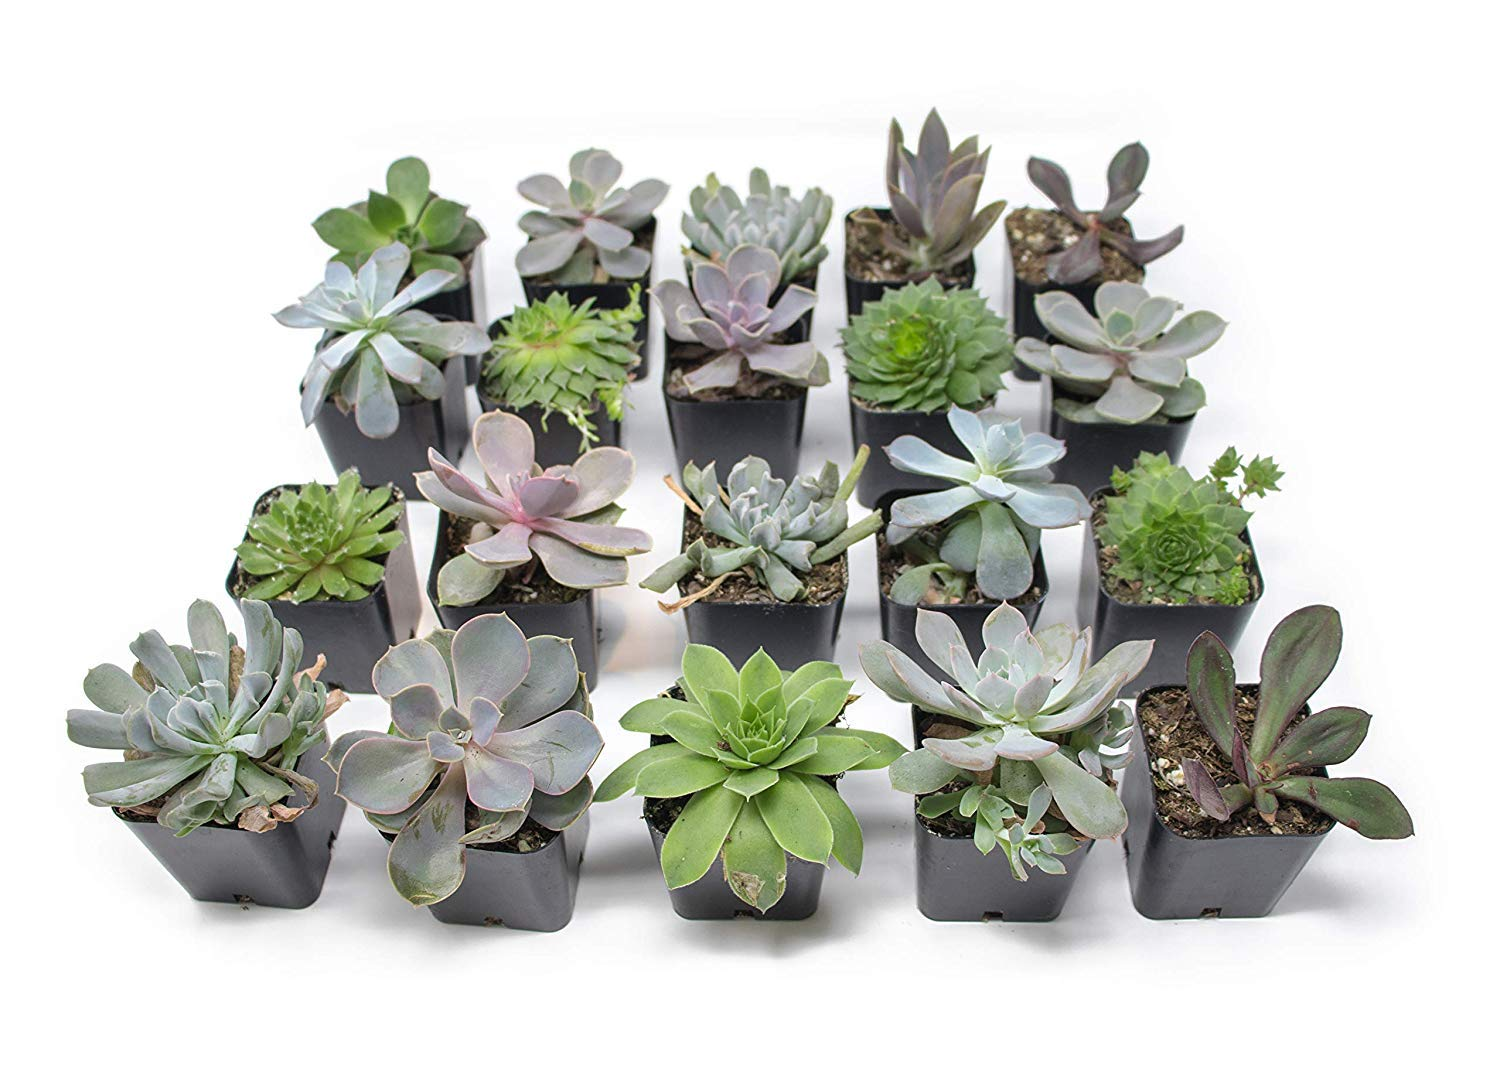 20 Live ''B-Grade'' Succulents | House Plants with Minor Flaws | Healthy Discounted Cheap Succulent Plants in Planter Pots with Soil by Plants for Pets by Plants for Pets (Image #3)